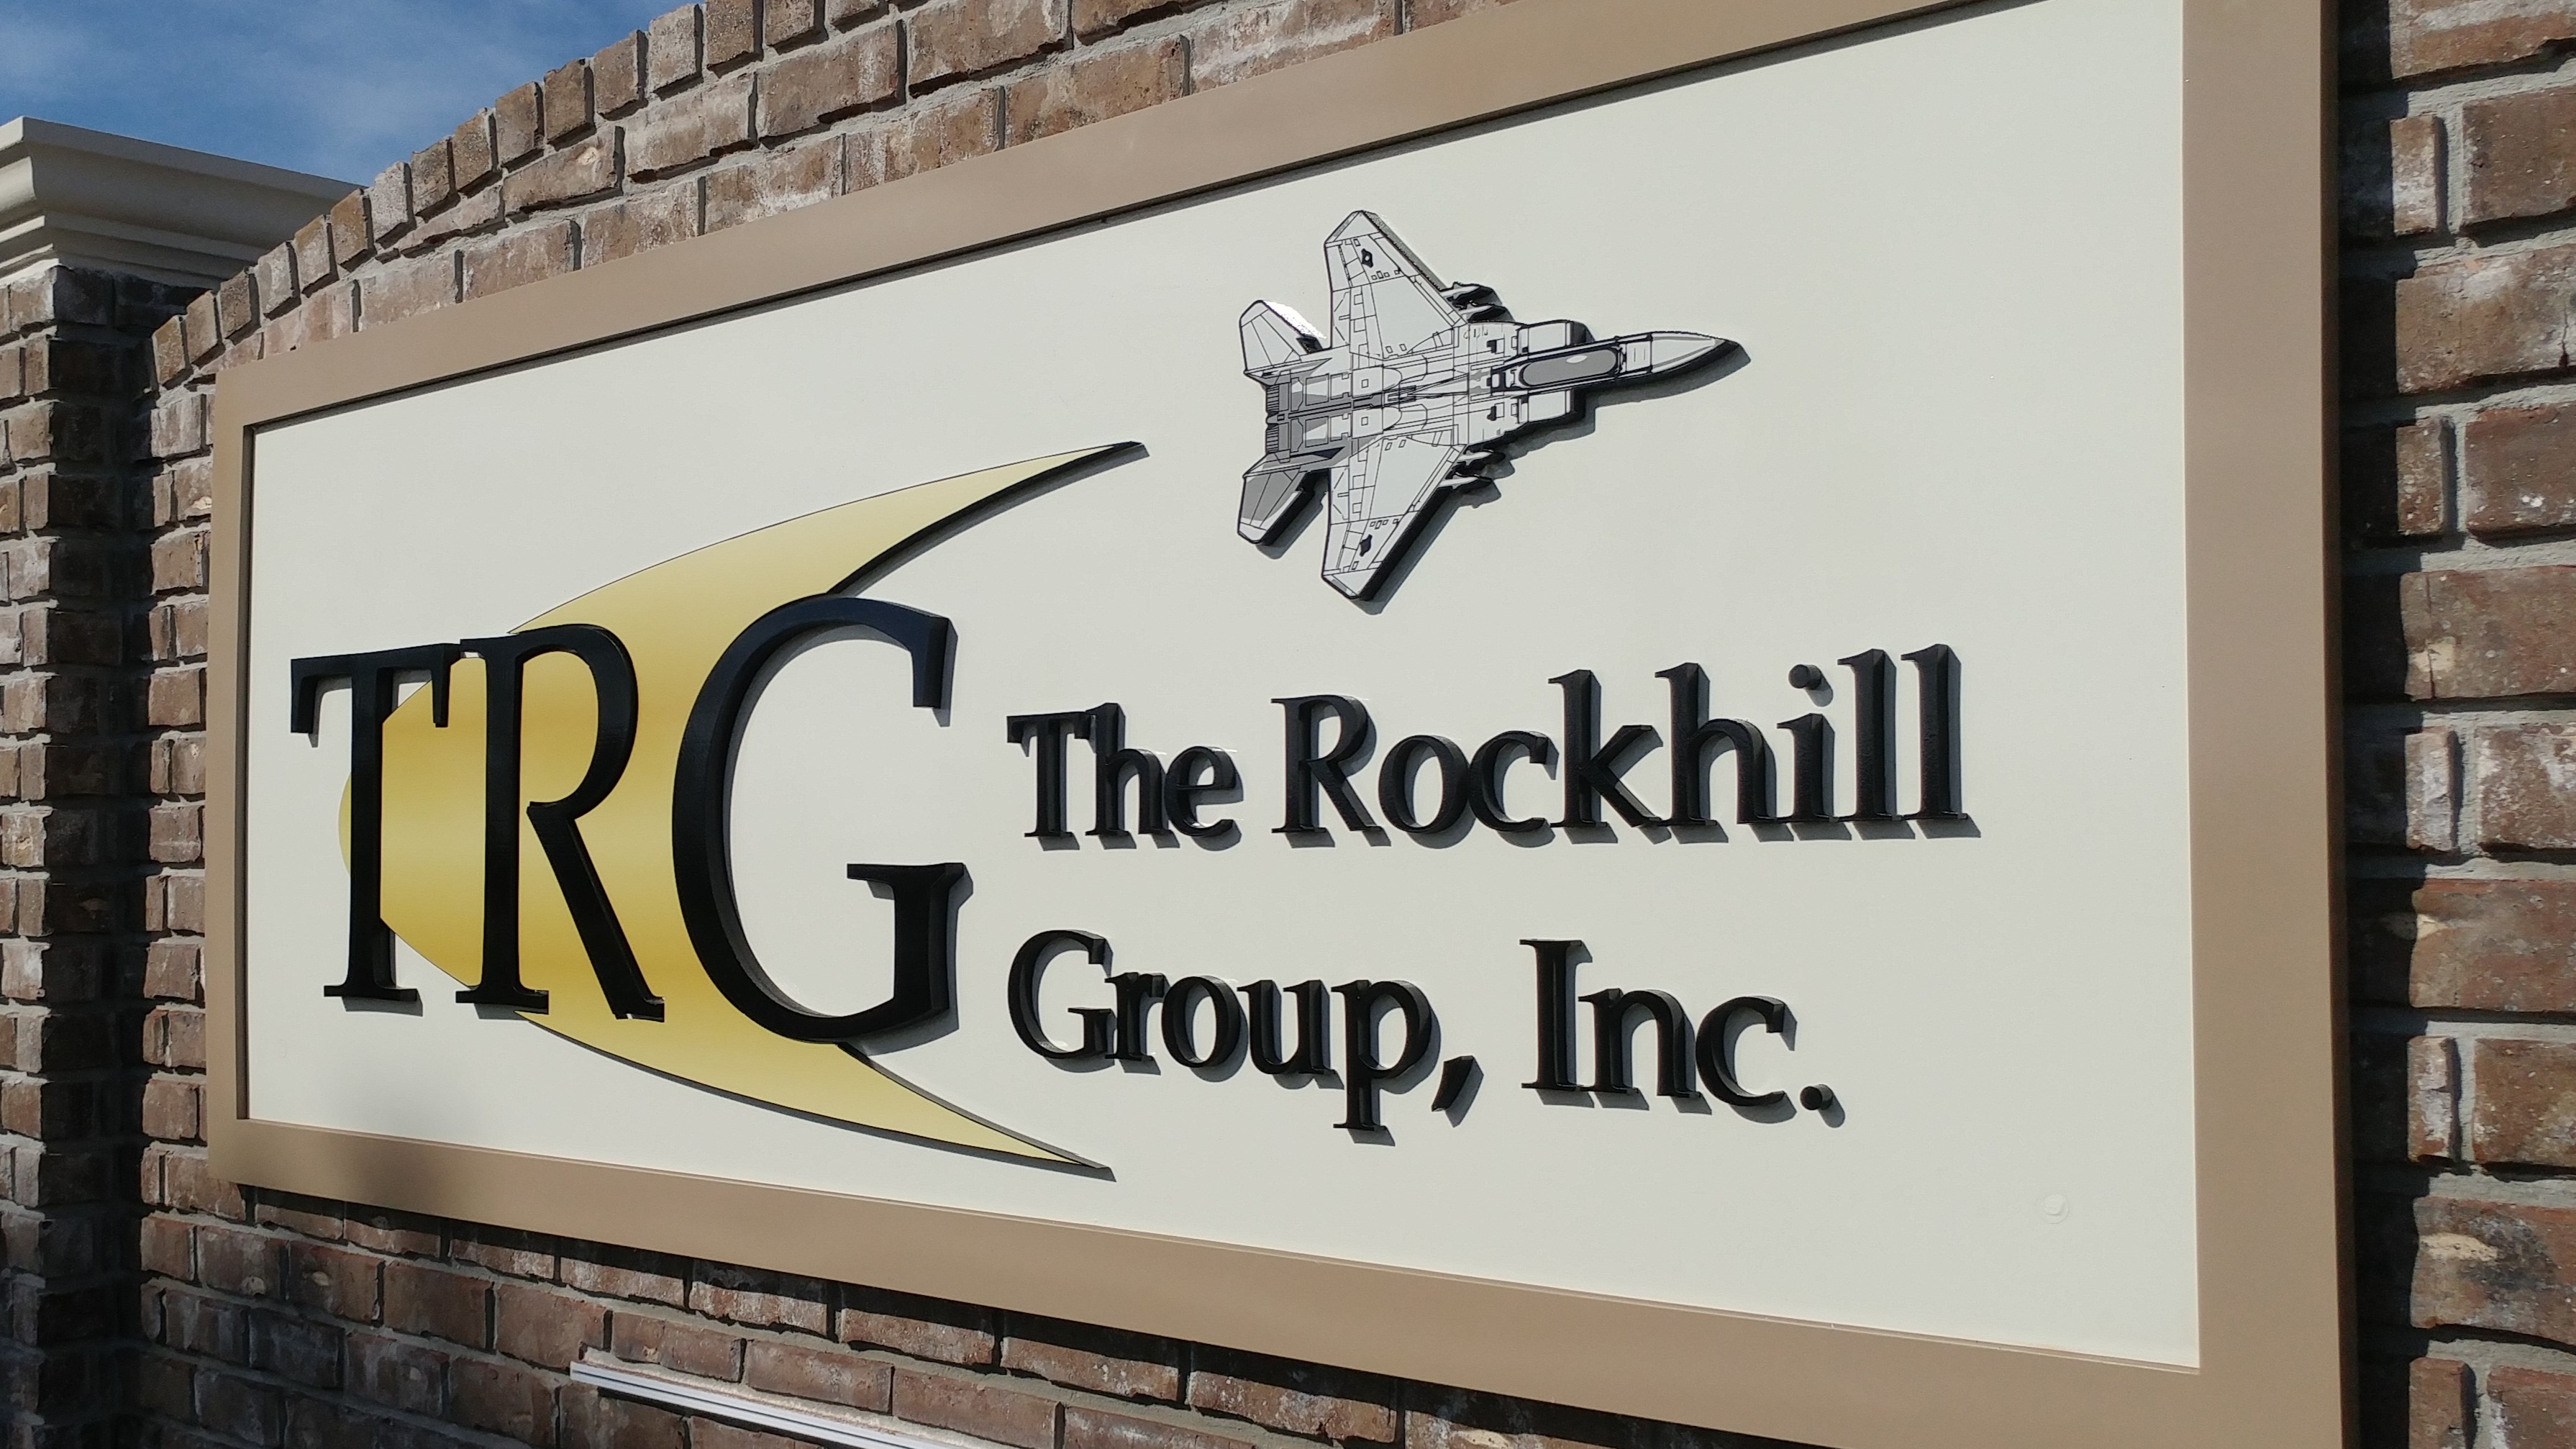 Architectural signage for TRG brand by signgeek